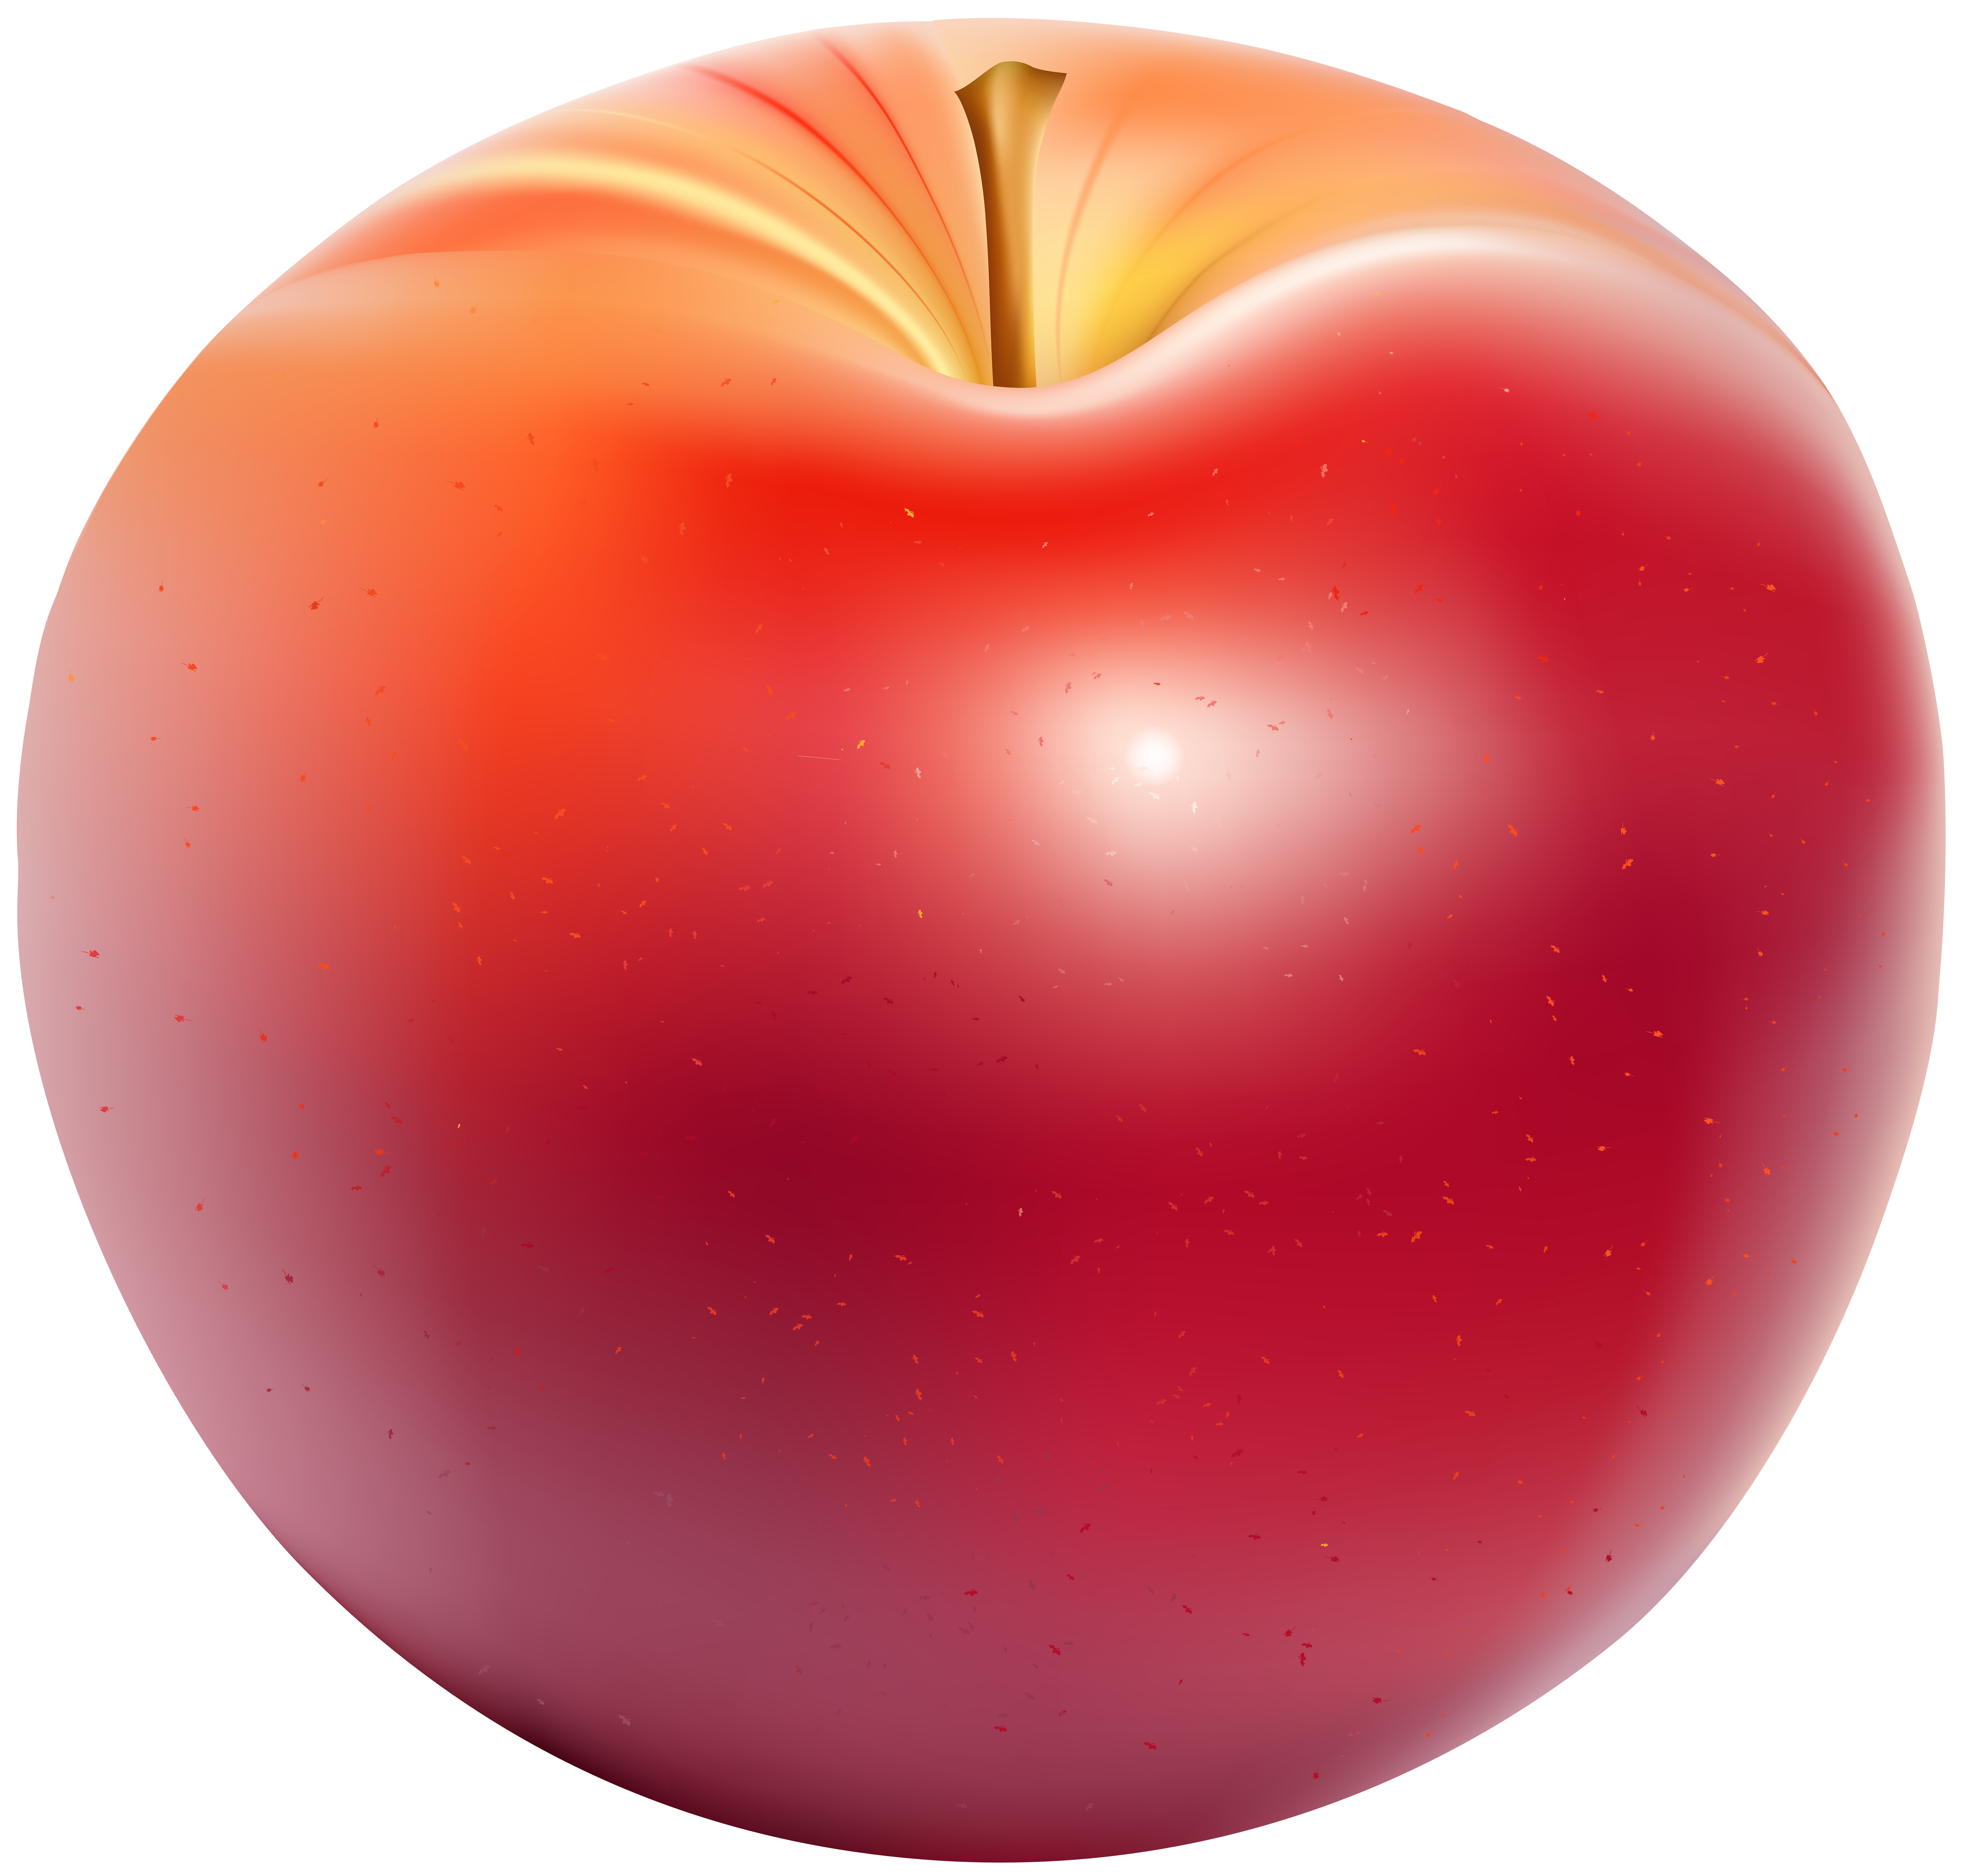 Red apple blue book clipart clip stock Red Apple PNG Clip Art Image - Best WEB Clipart clip stock